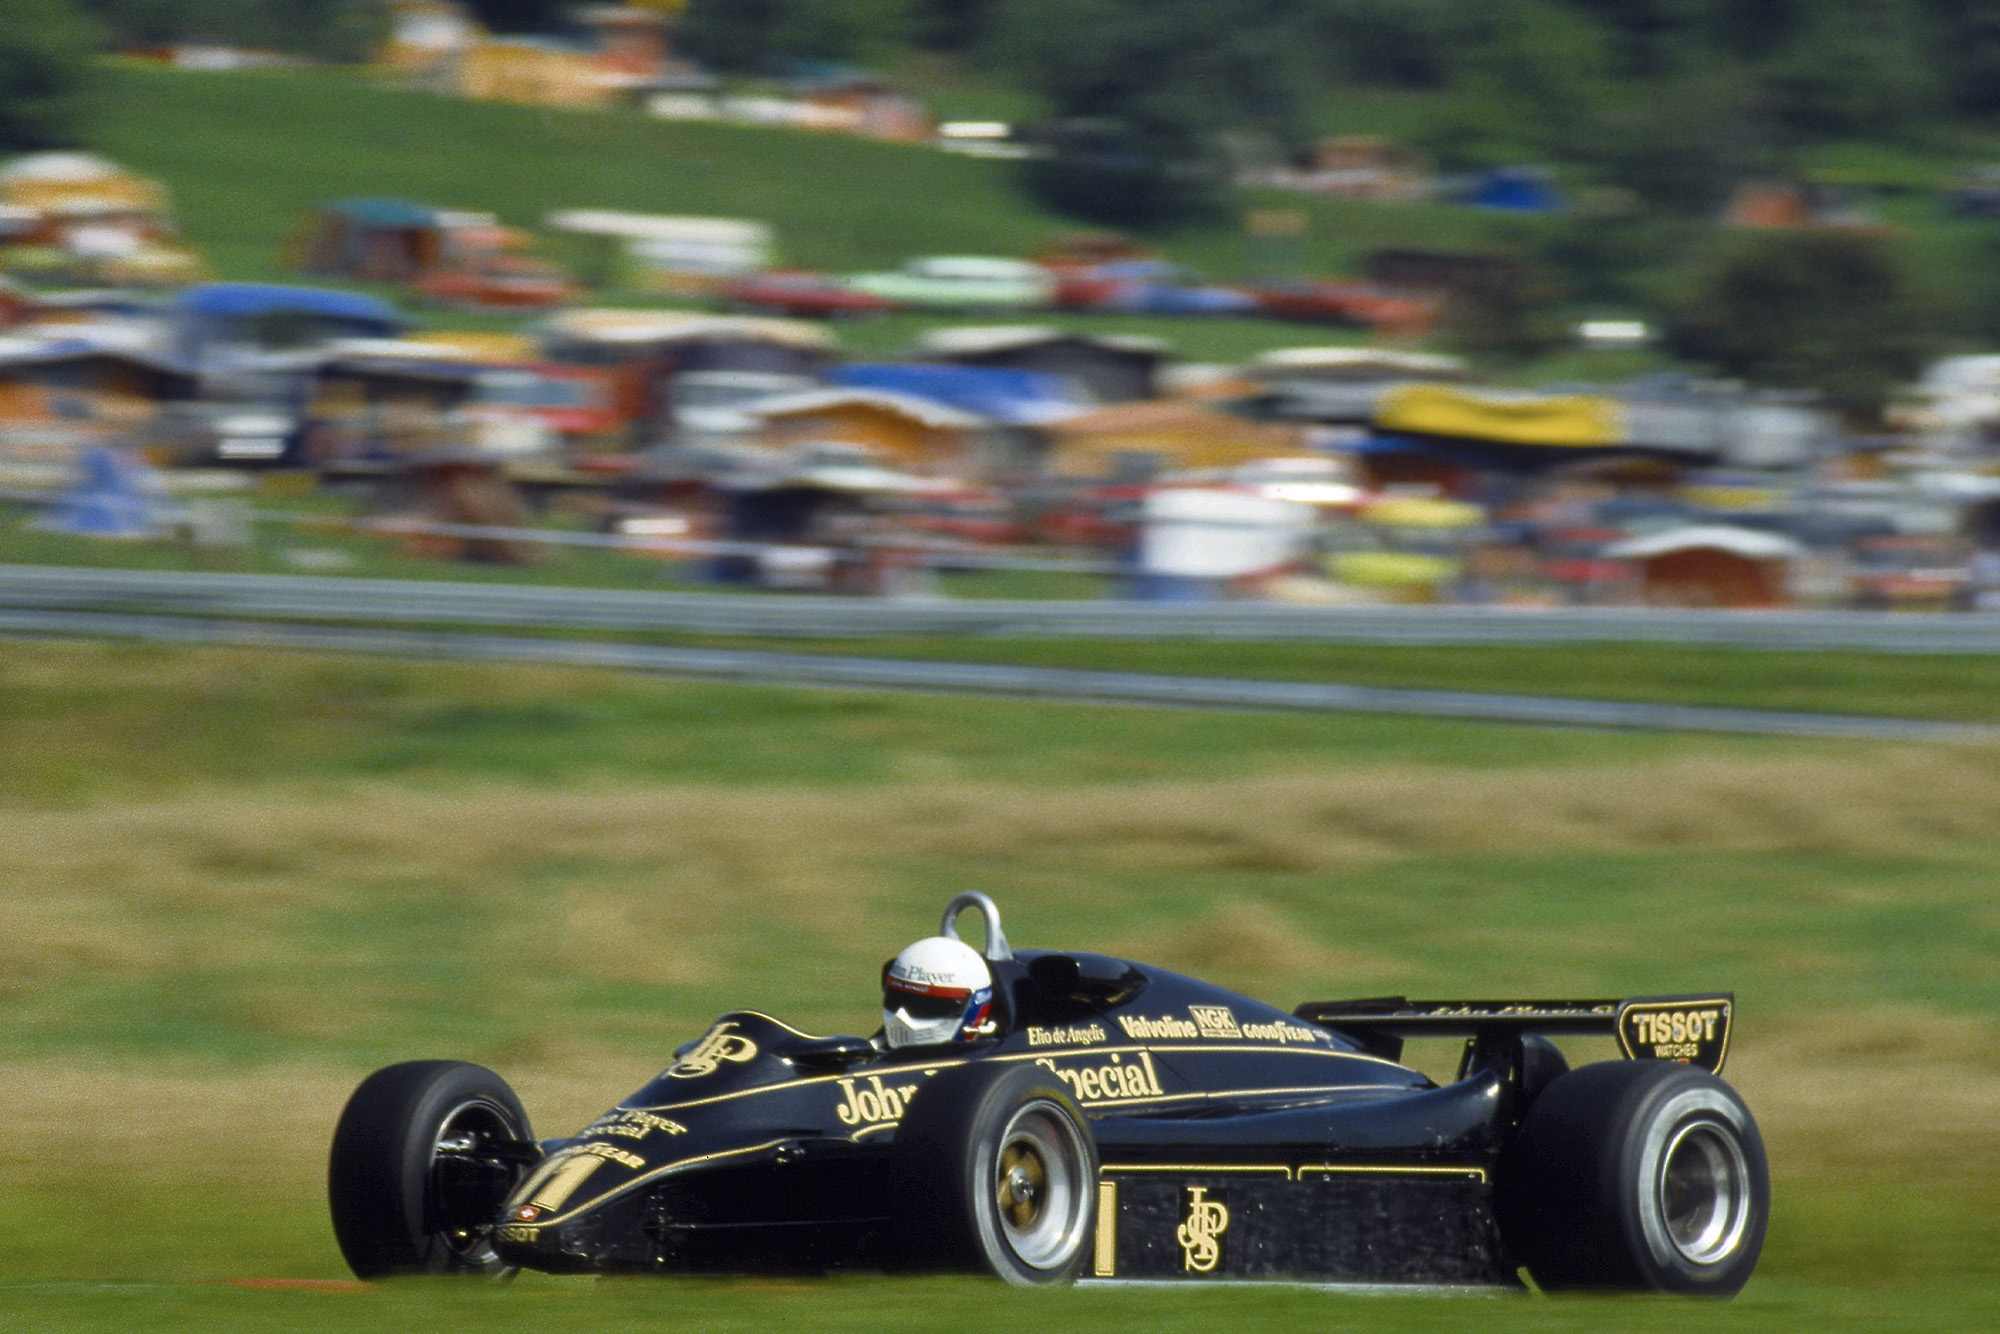 Elio de Angelis on his way to victory at the Osterreichring in the 1982 Austrian Grand Prix